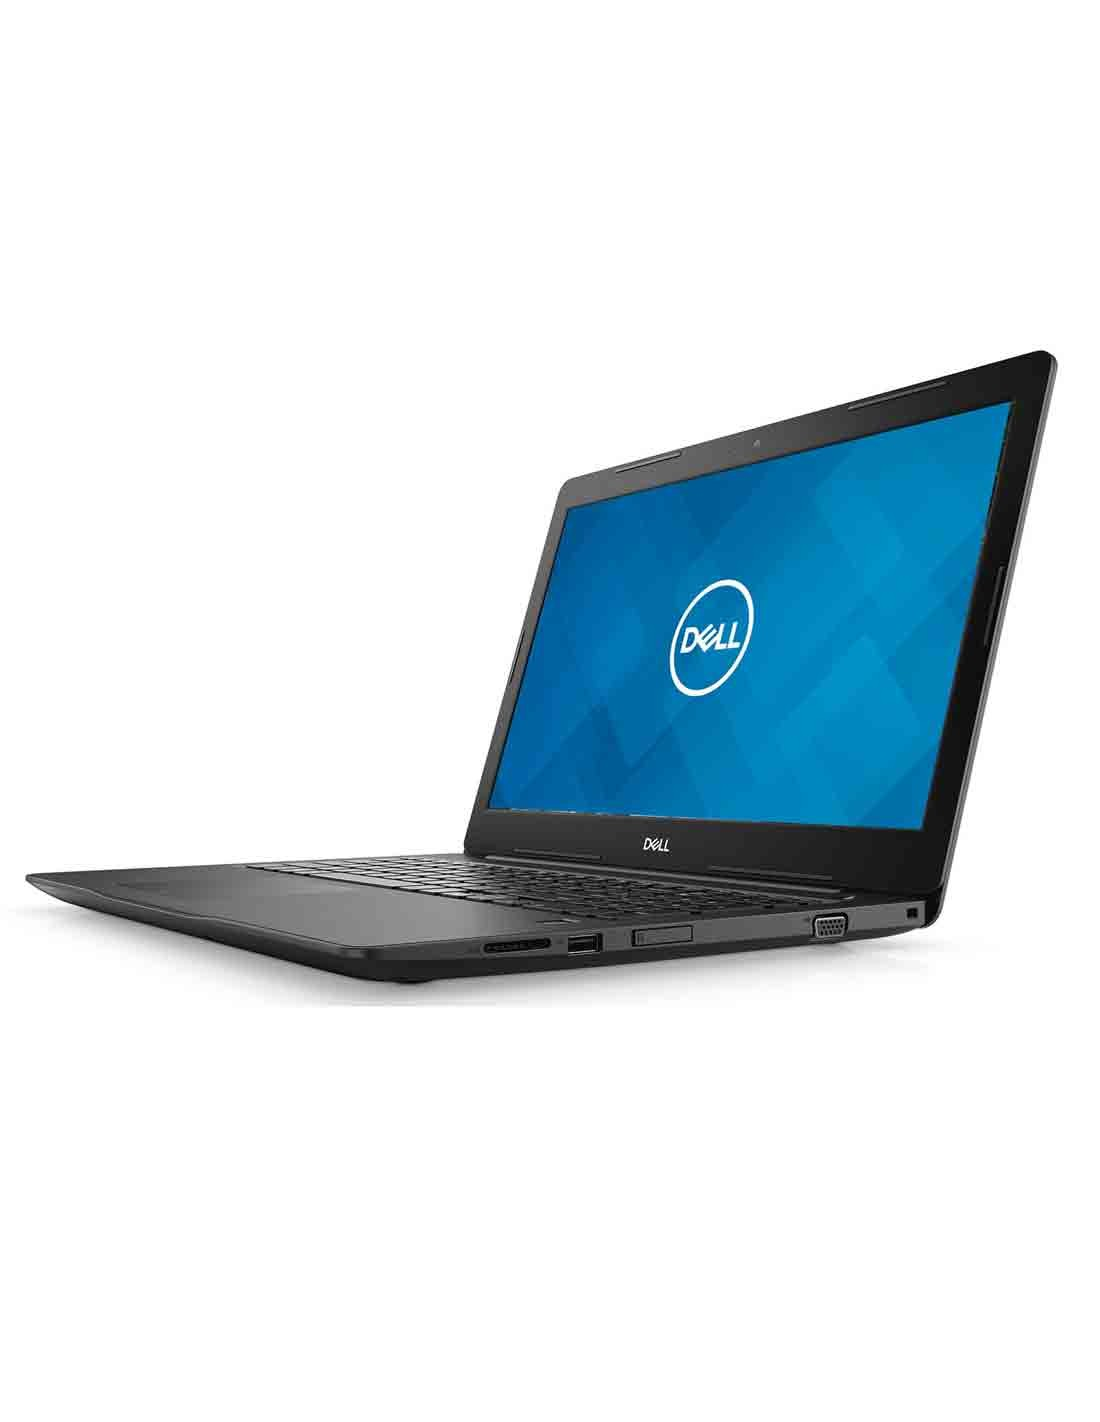 Dell Latitude 3590 Laptop images and photos in Dubai online store